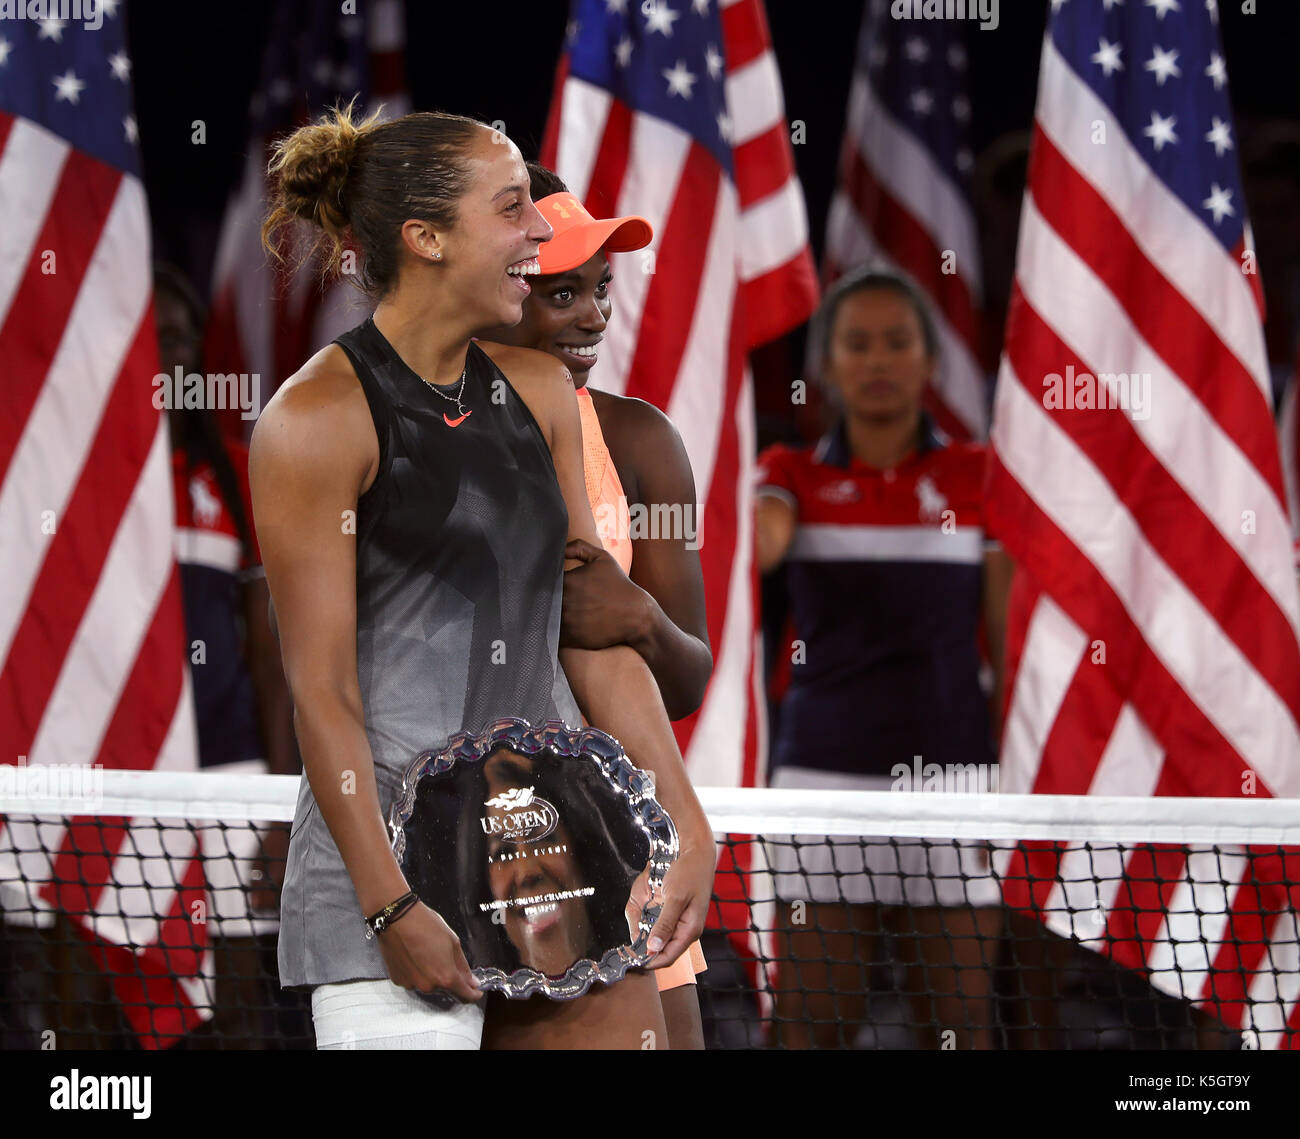 New York, United States. 09th Sep, 2017. US Open Tennis: New York, 9 September, 2017 - Sloane Stephens of the United - Stock Image